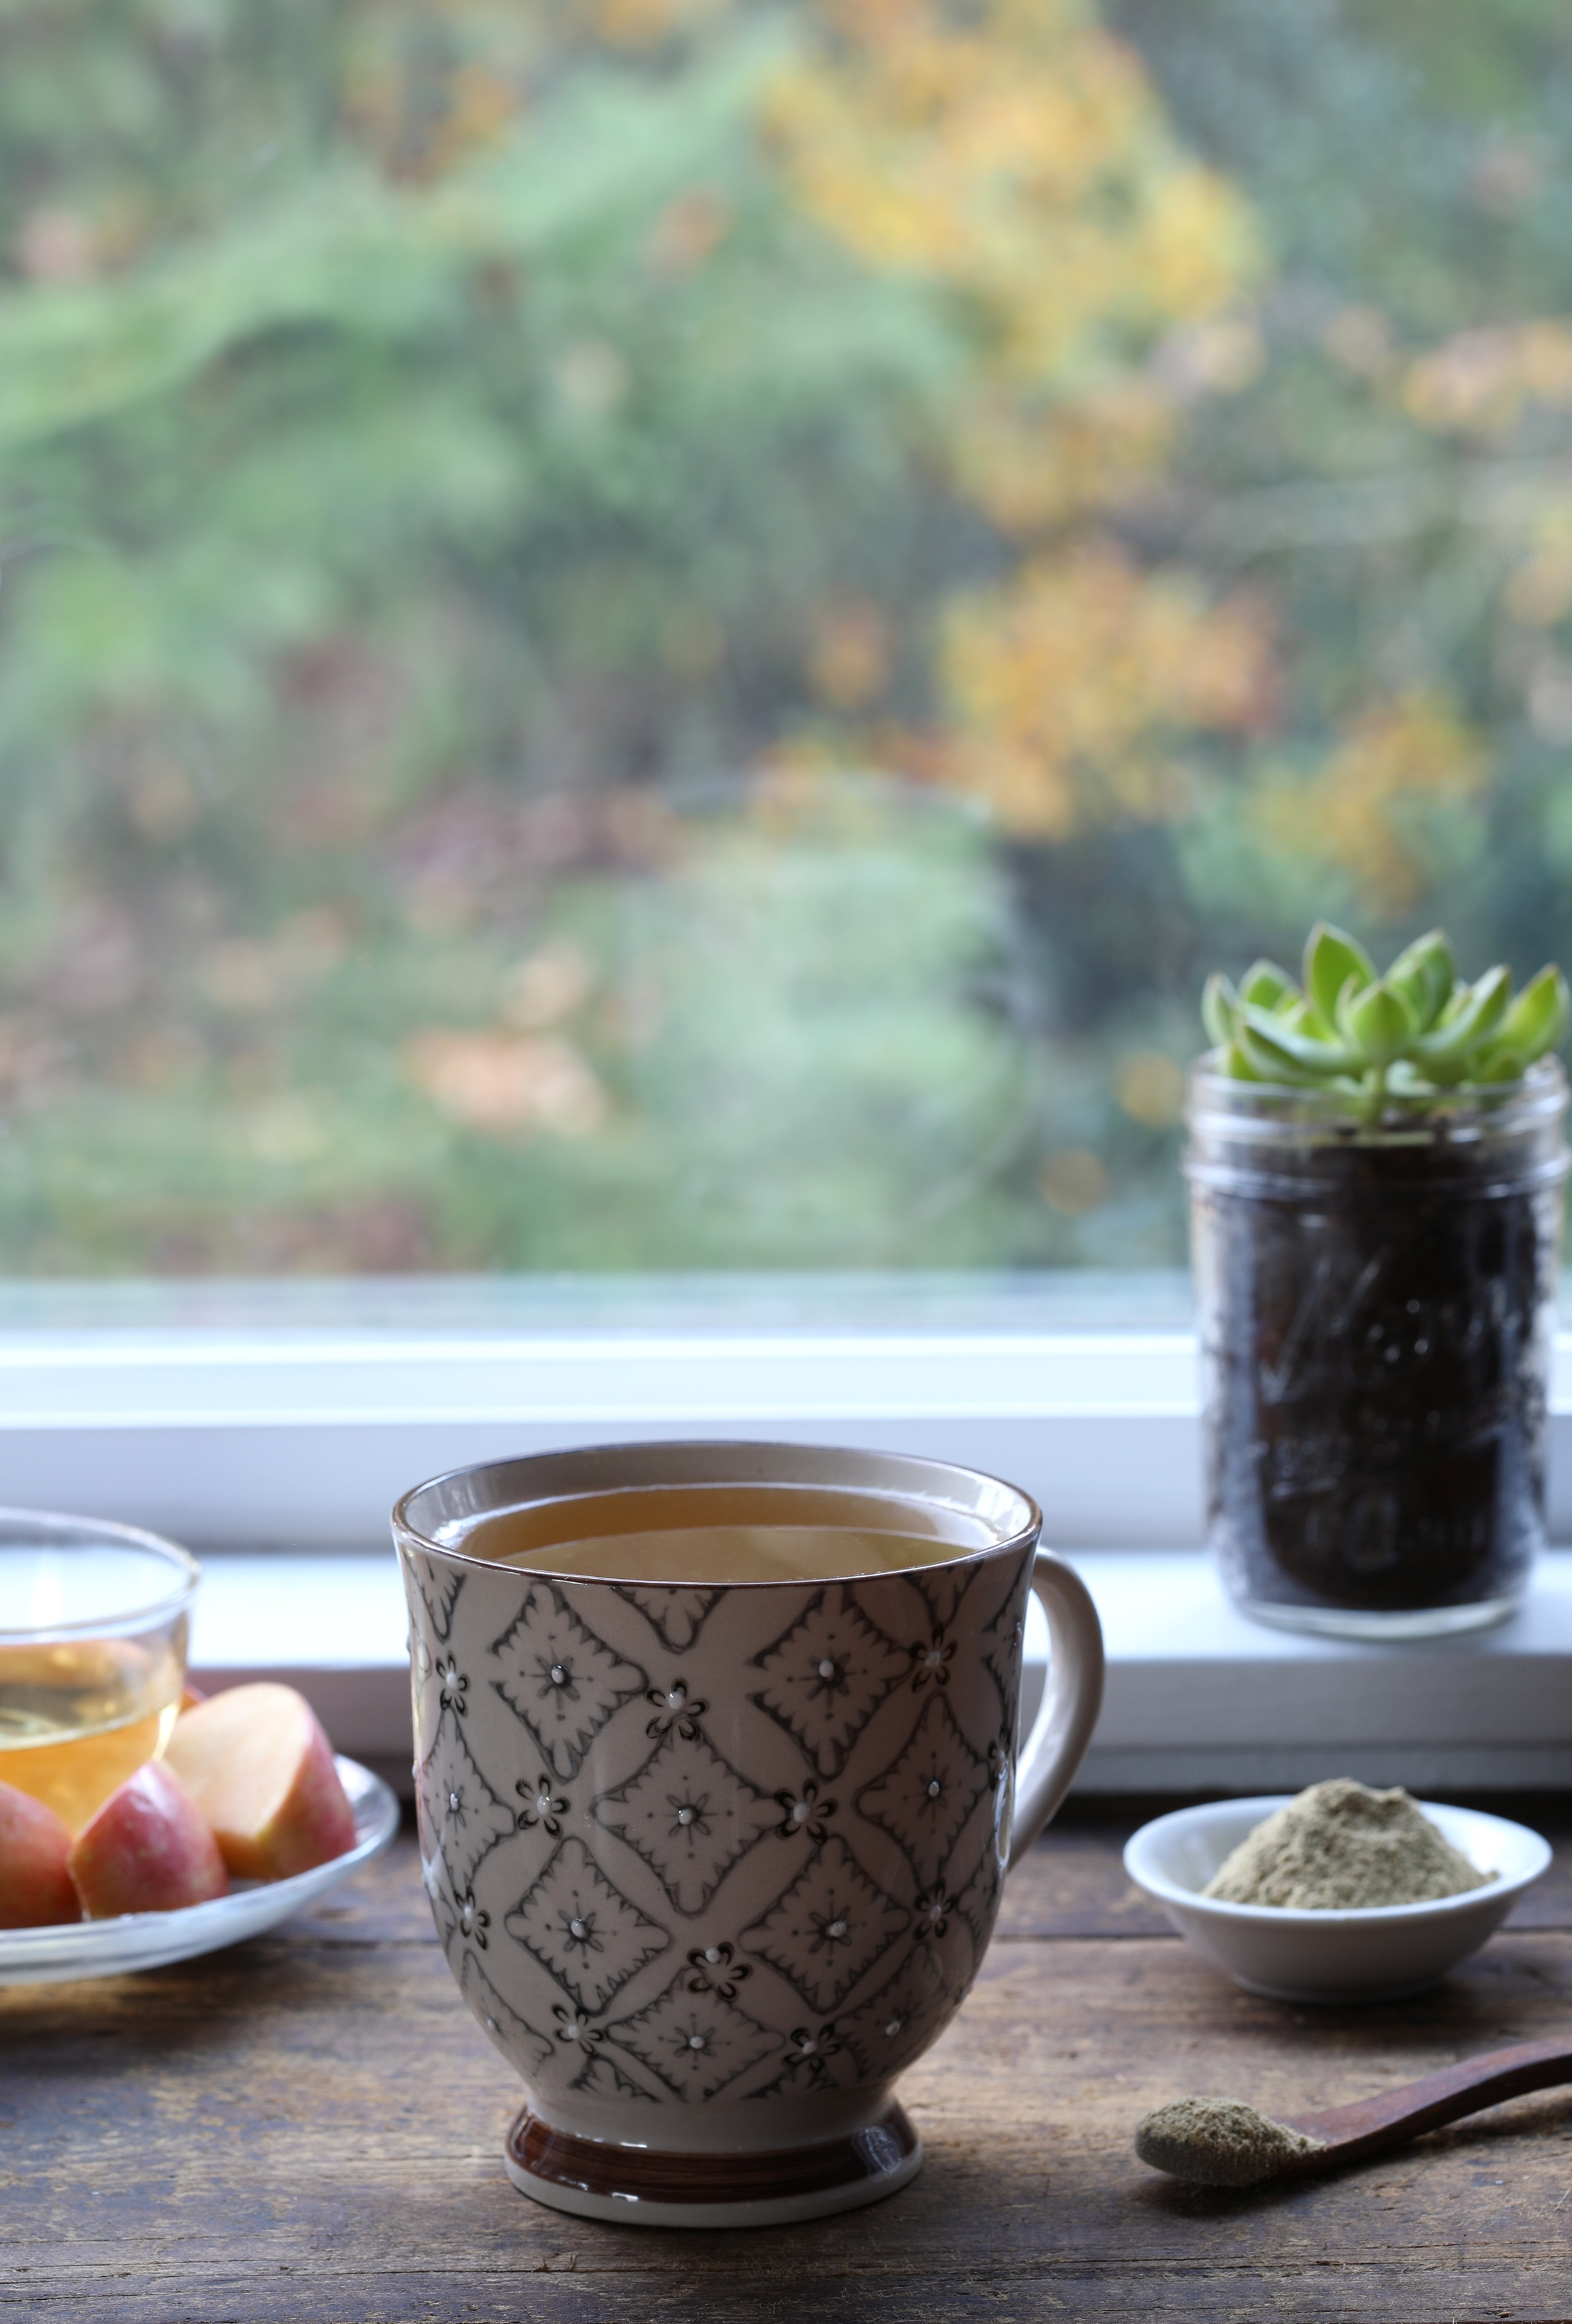 Ceramic mug filled with kava kava tea made from a french press sitting on window sill